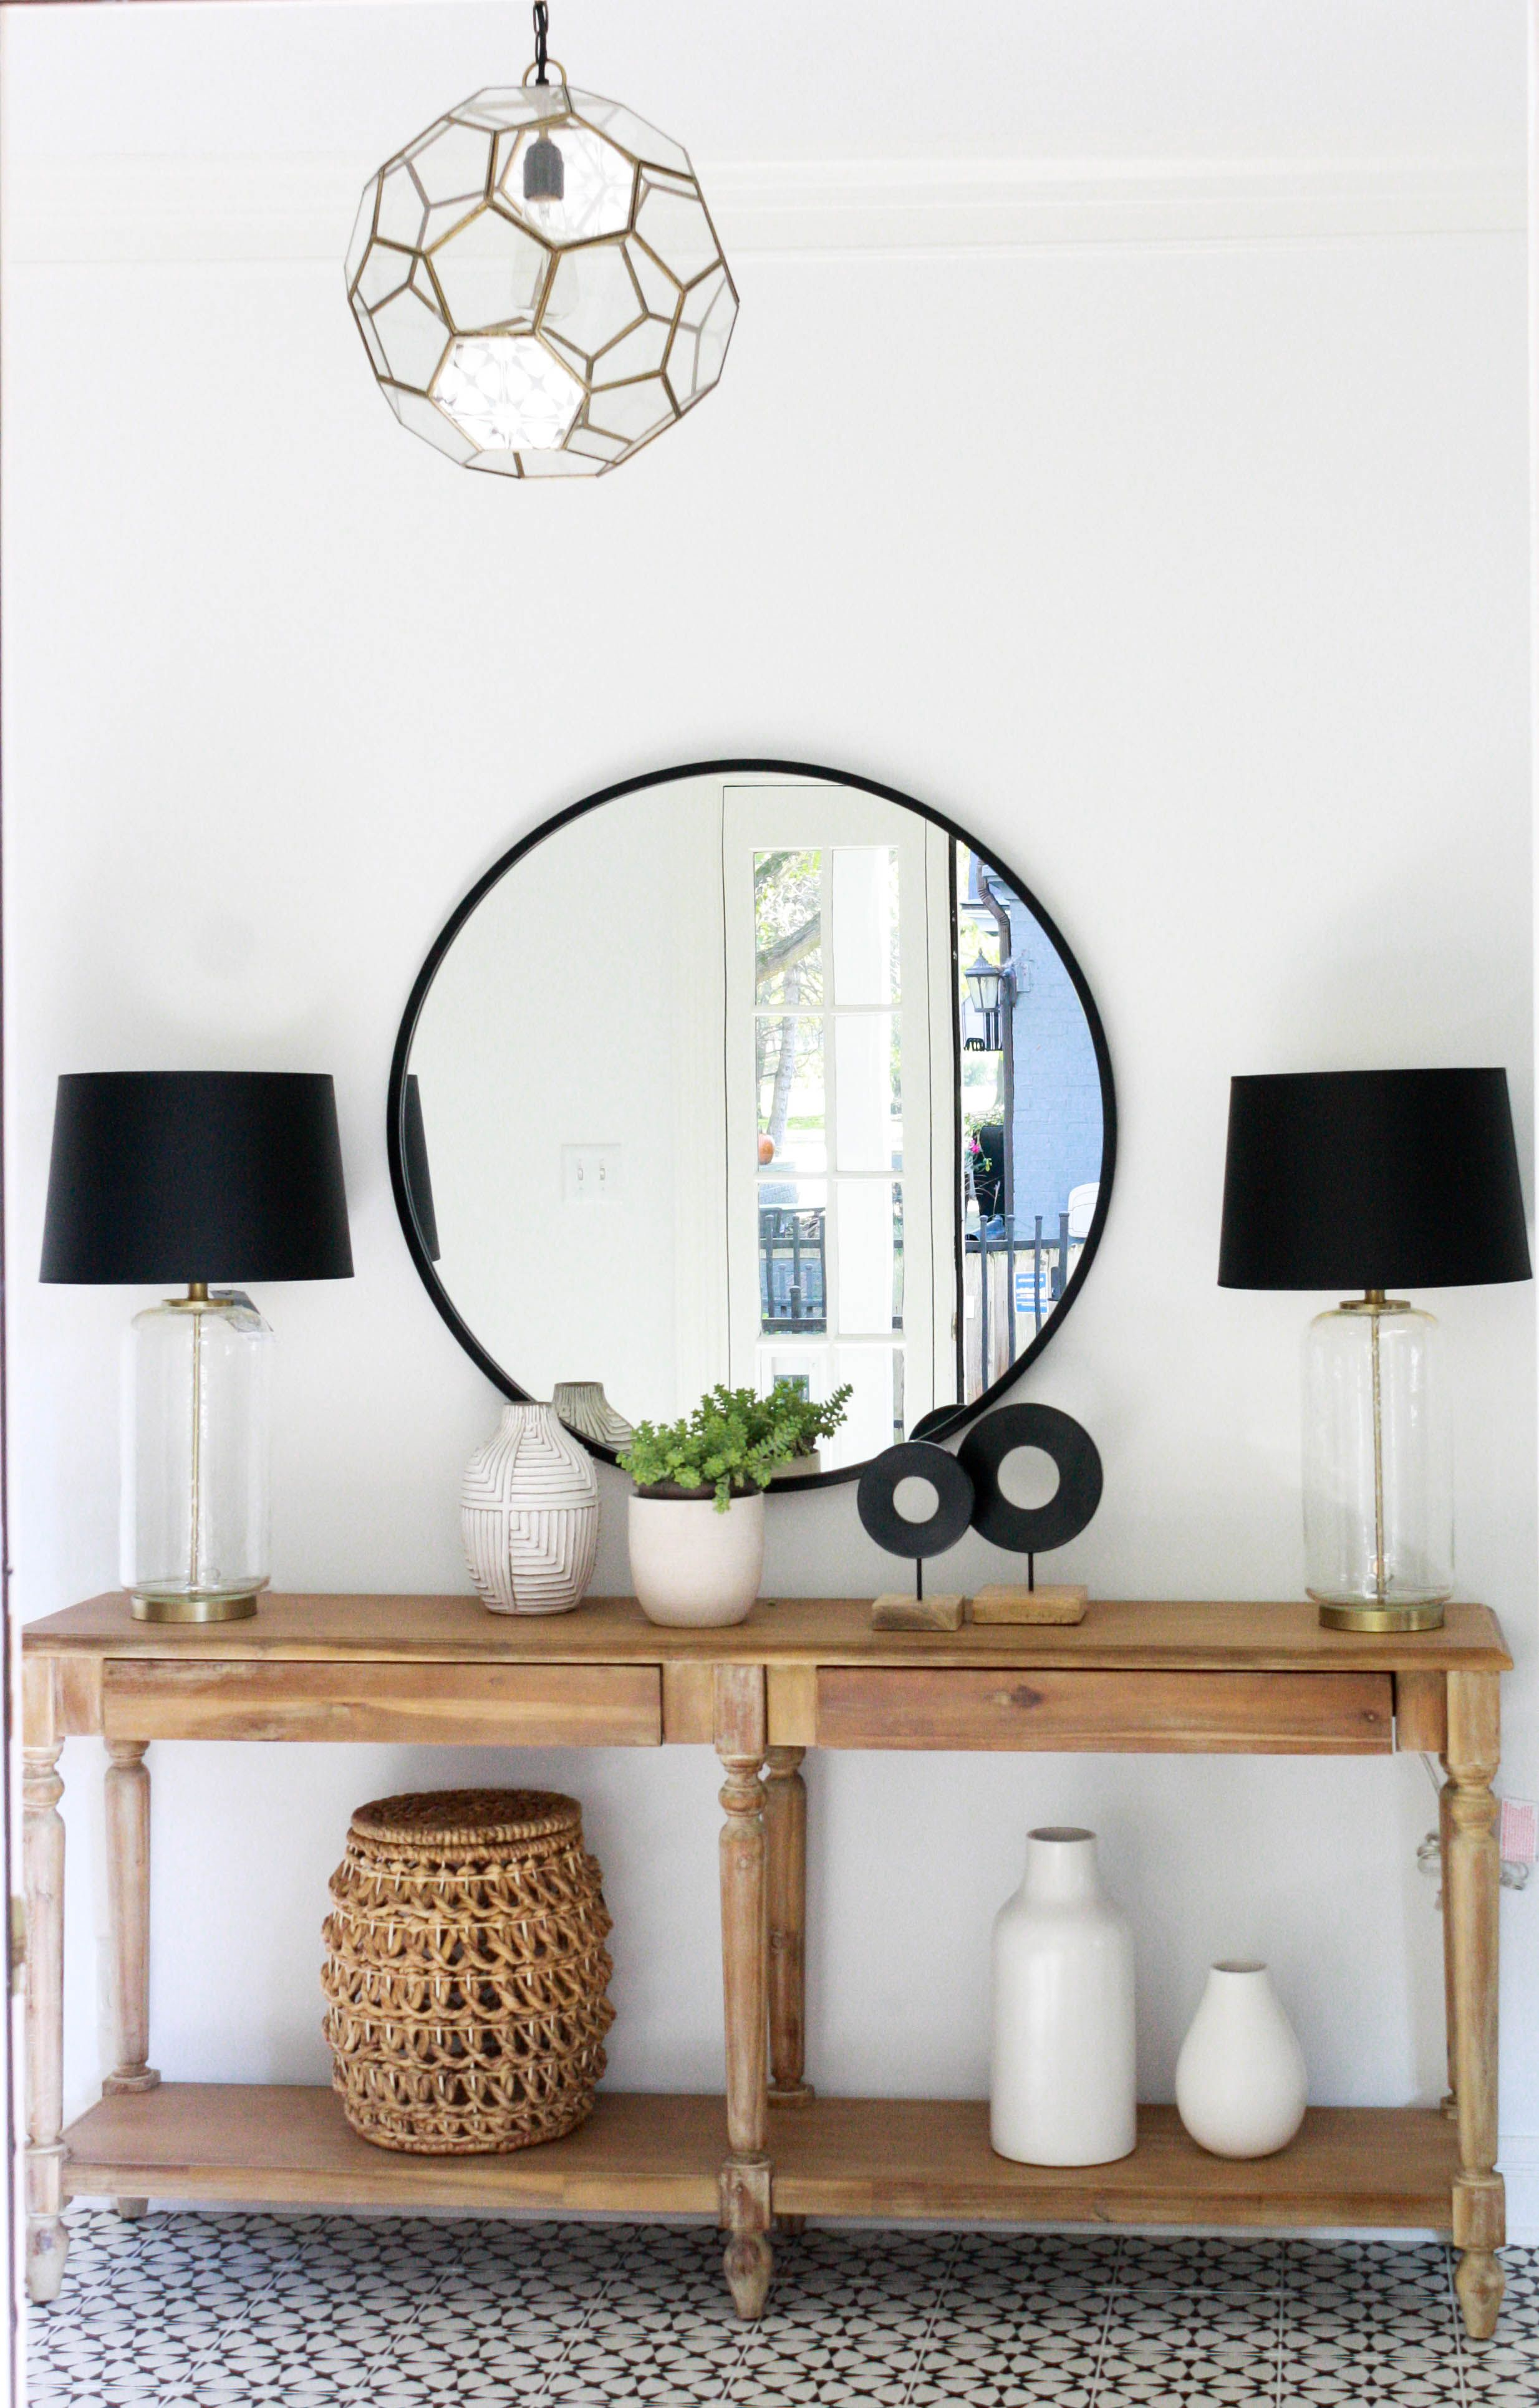 Entryway Console Table Round Gold Target Mirror See This Instagram Photo By Thedecordiet Entrance Table Decor Entryway Table Decor Beauty Room Decor